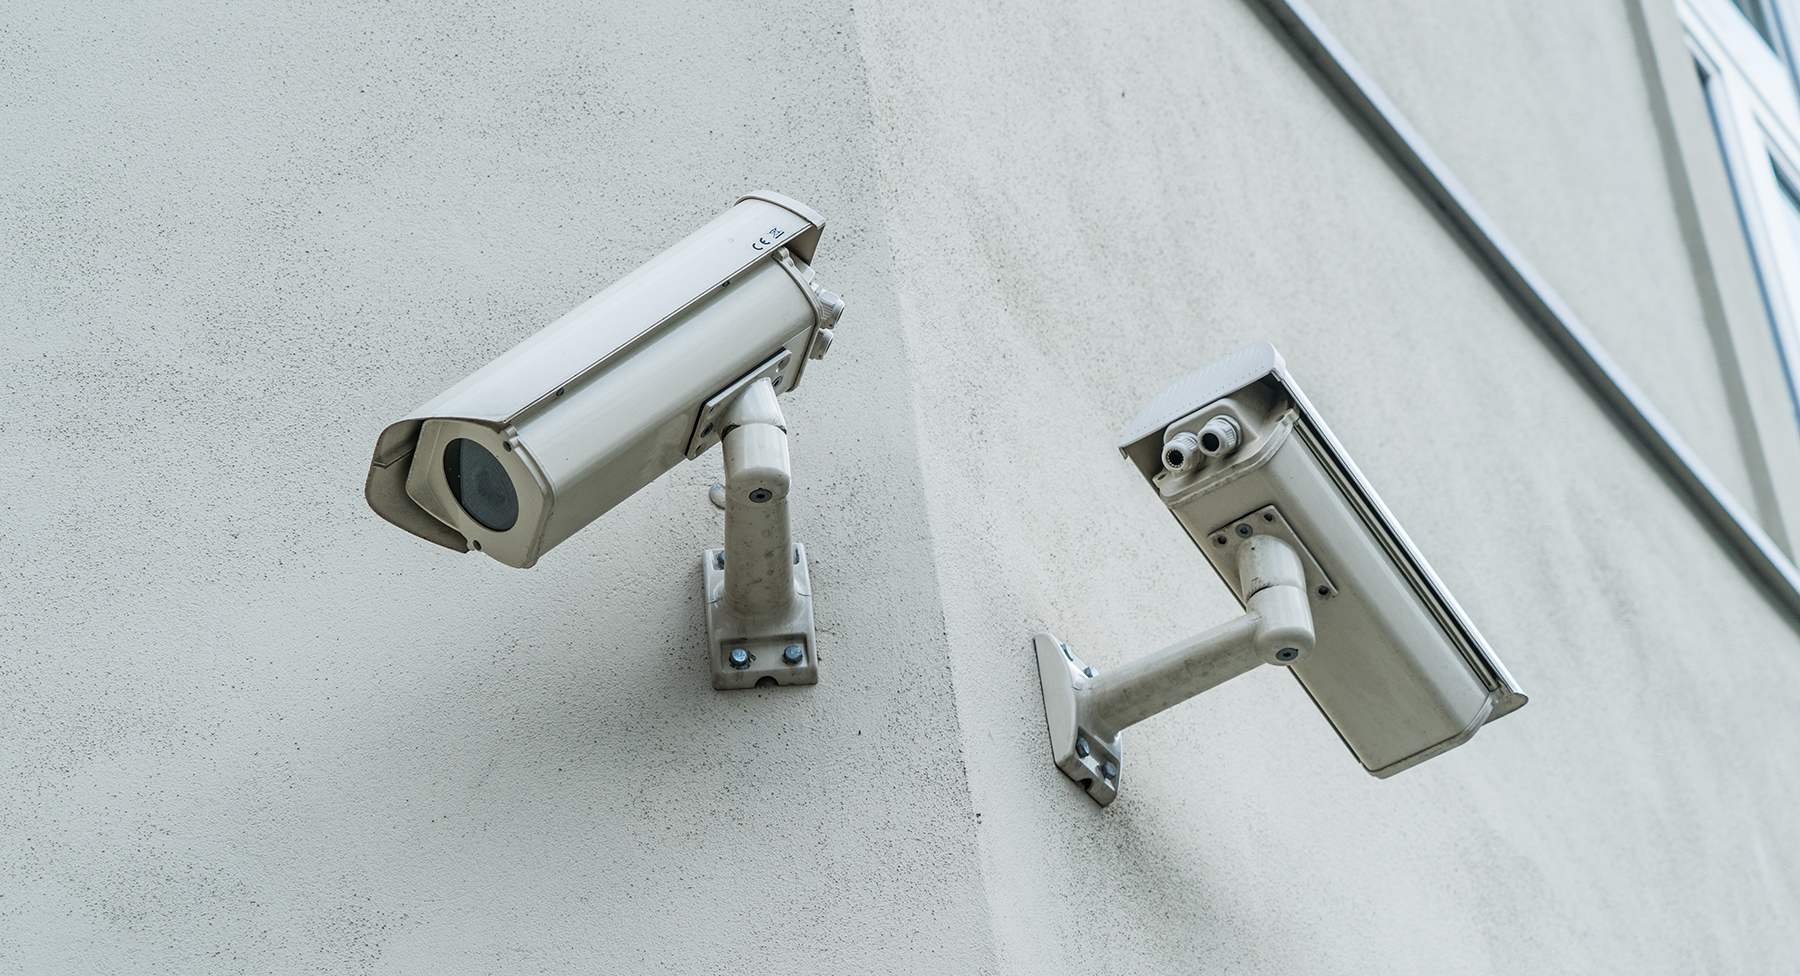 Two CCTV cameras on a wall